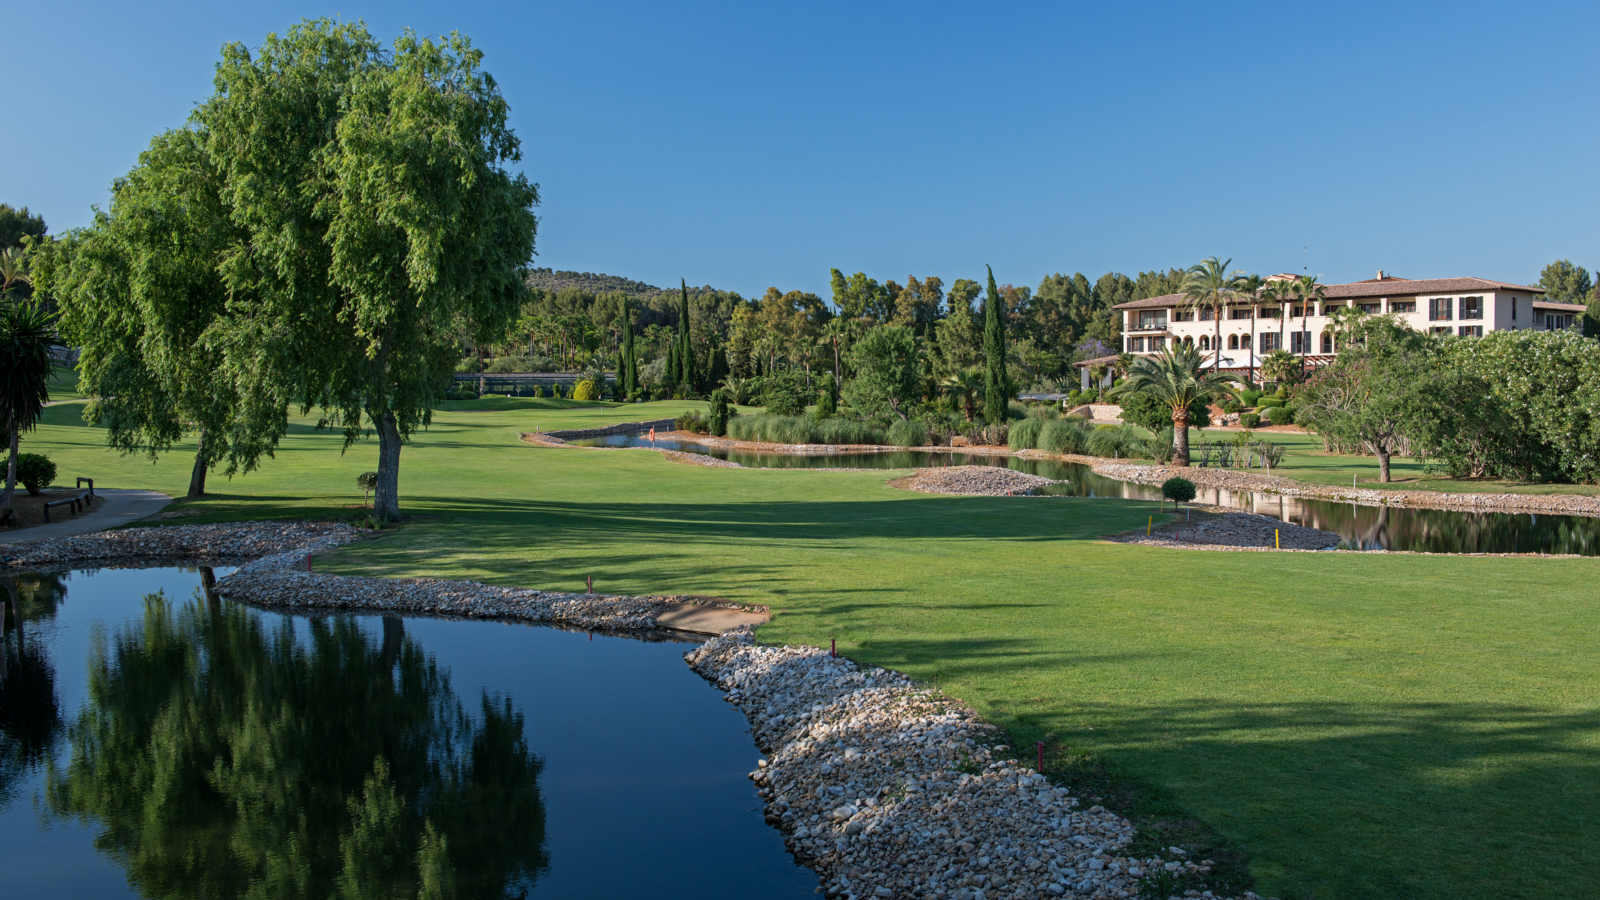 Son Vida golf course at  The St. Regis Mardavall Mallorca